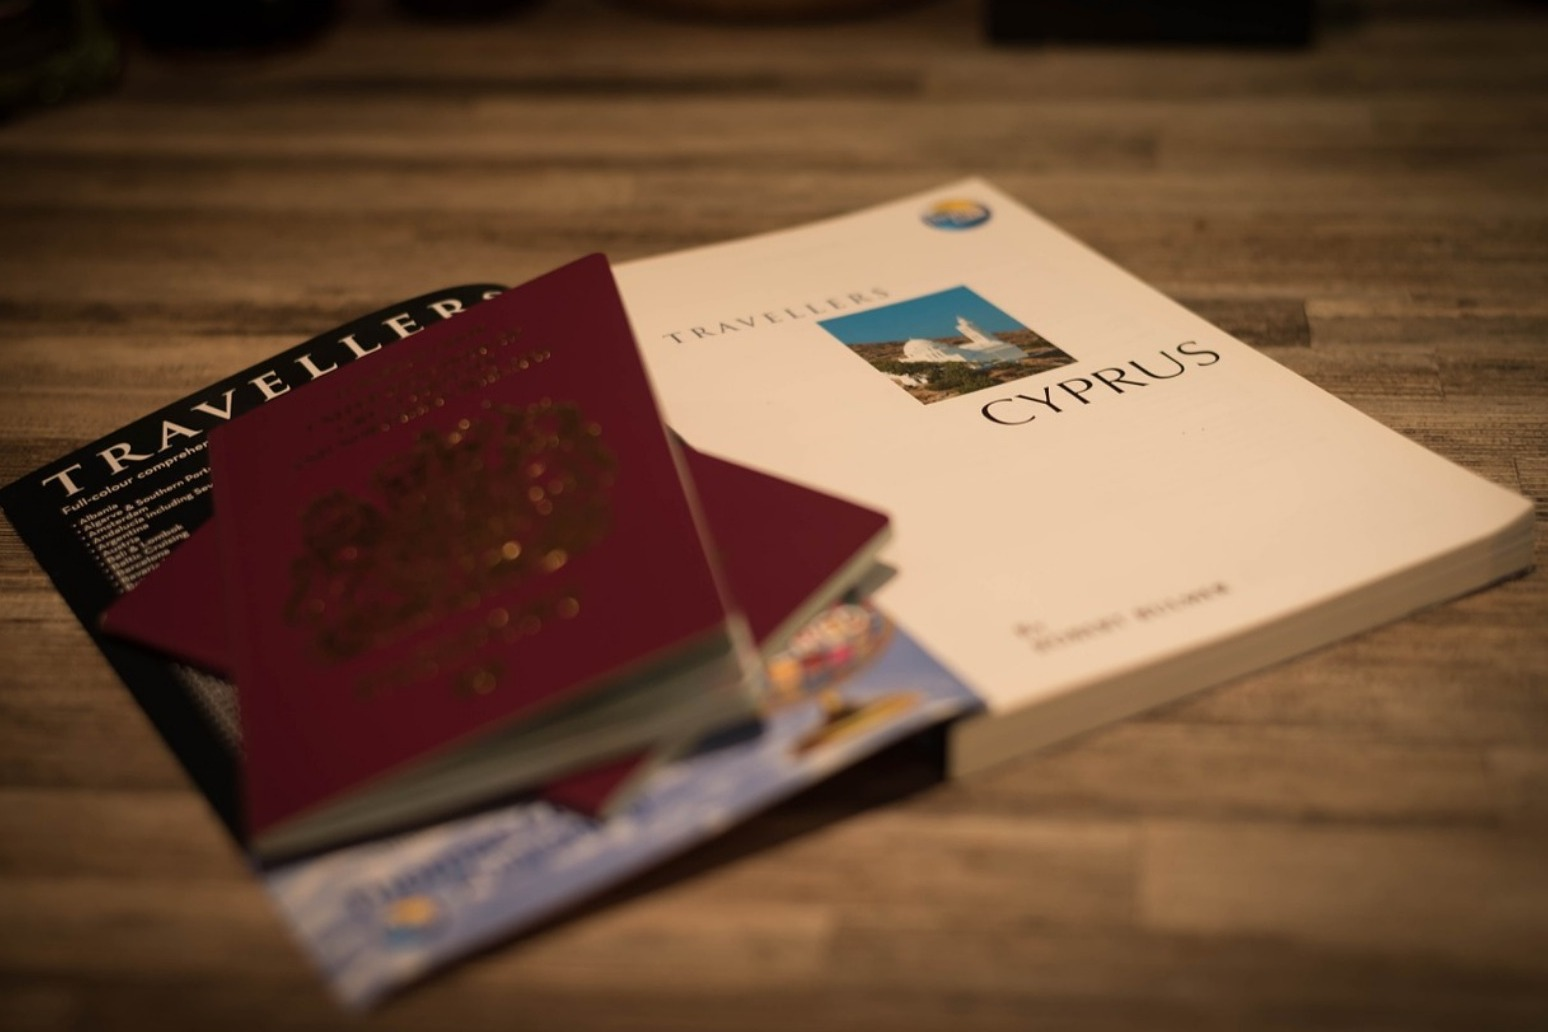 British firm to challenge passport decision